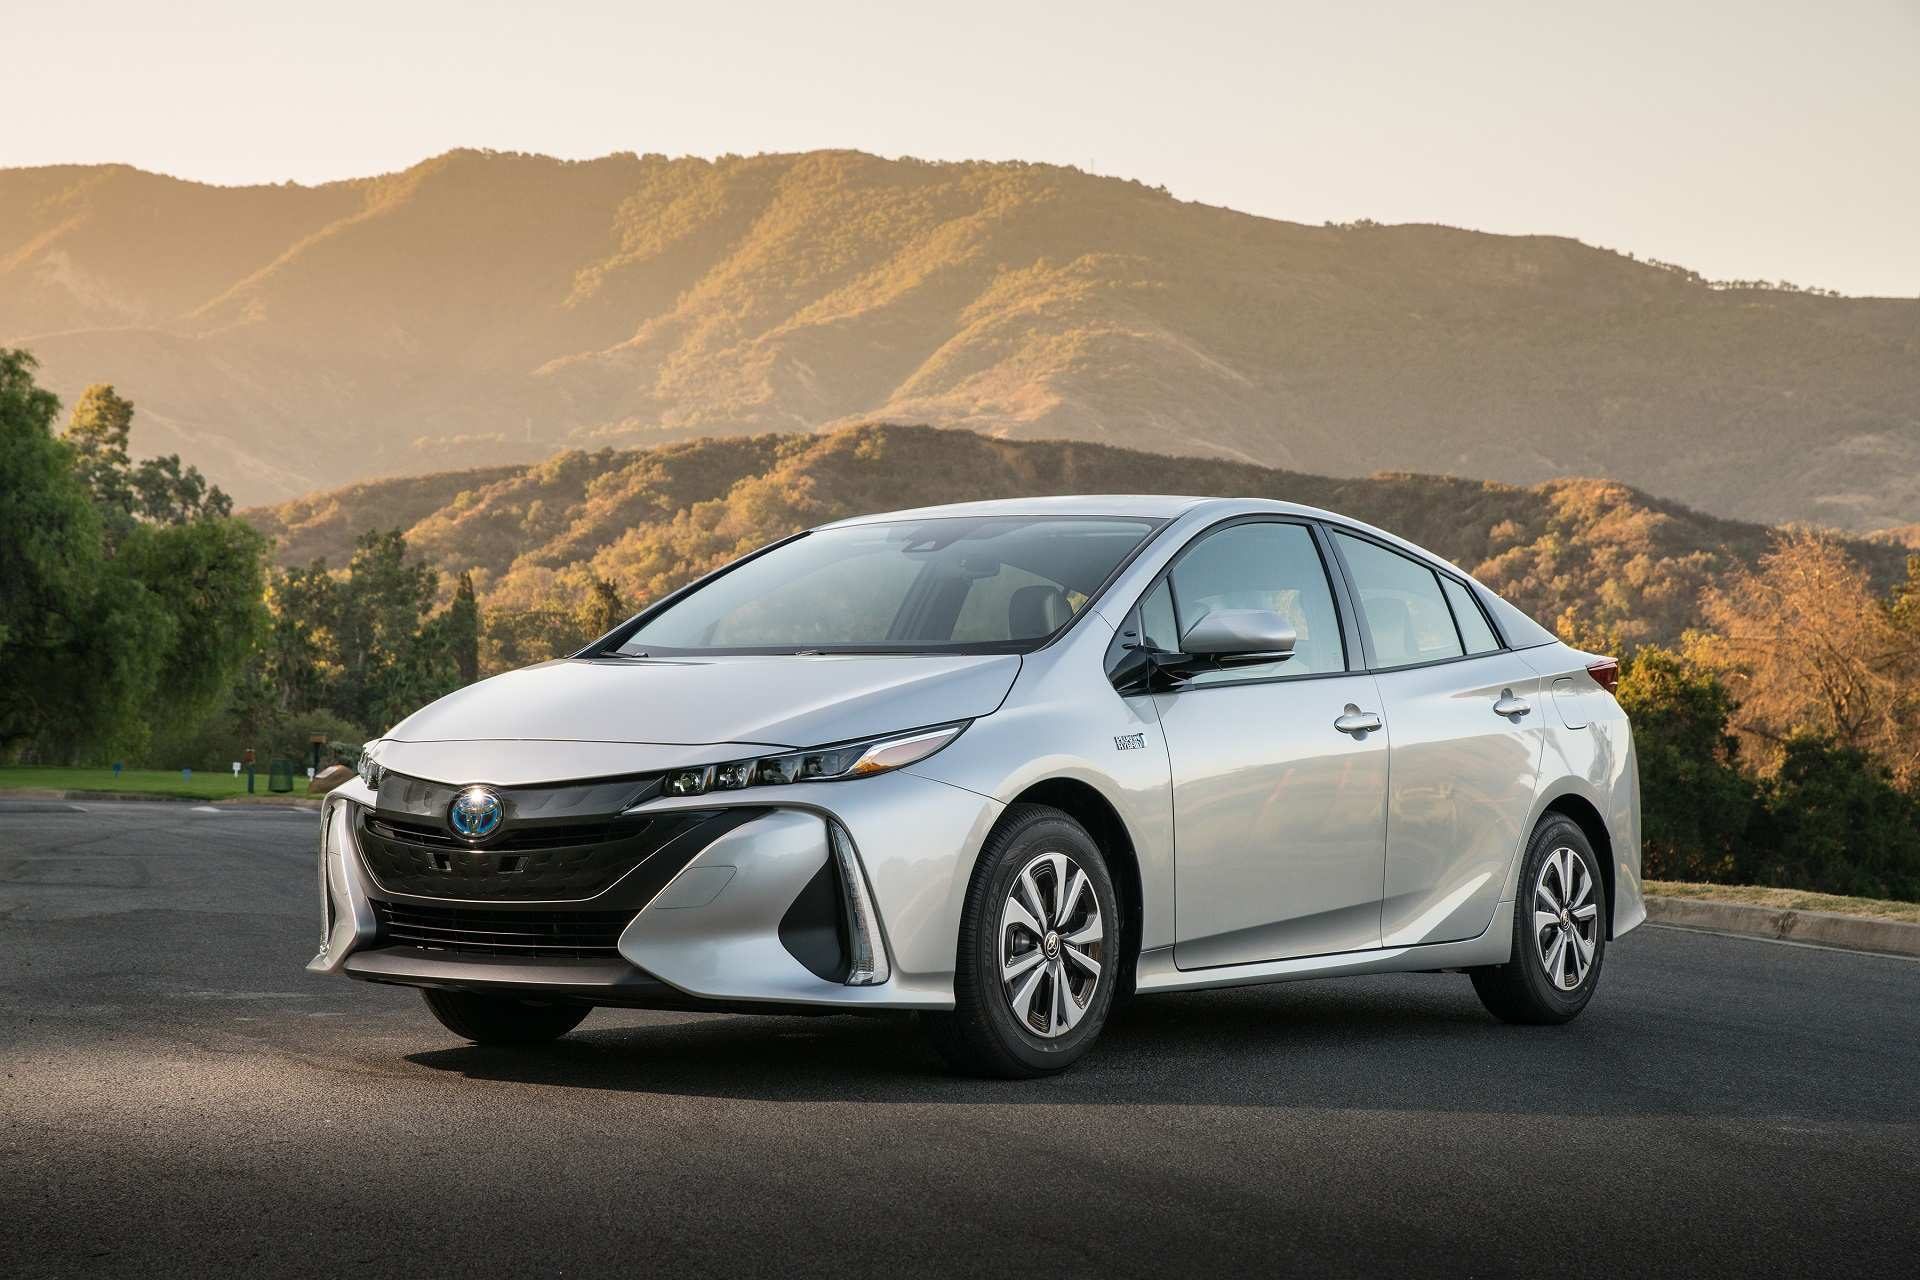 72 The Best 2019 Toyota Prius Plug In Hybrid Review